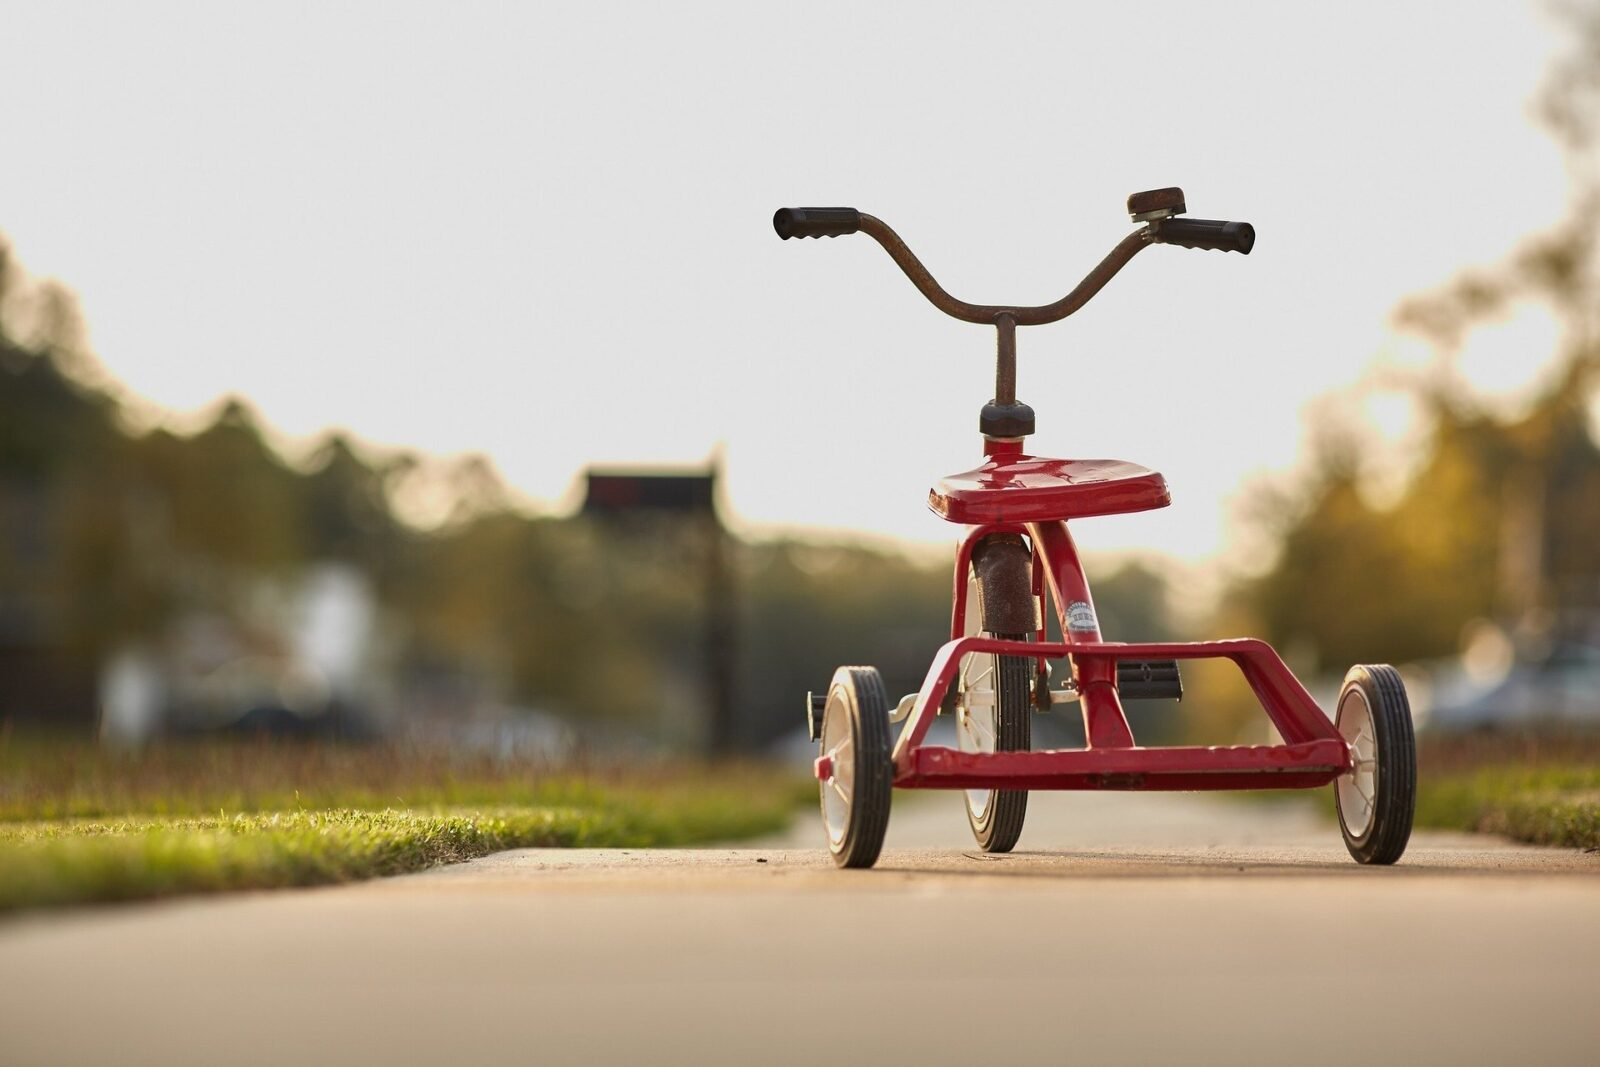 tricycle-691587_1920